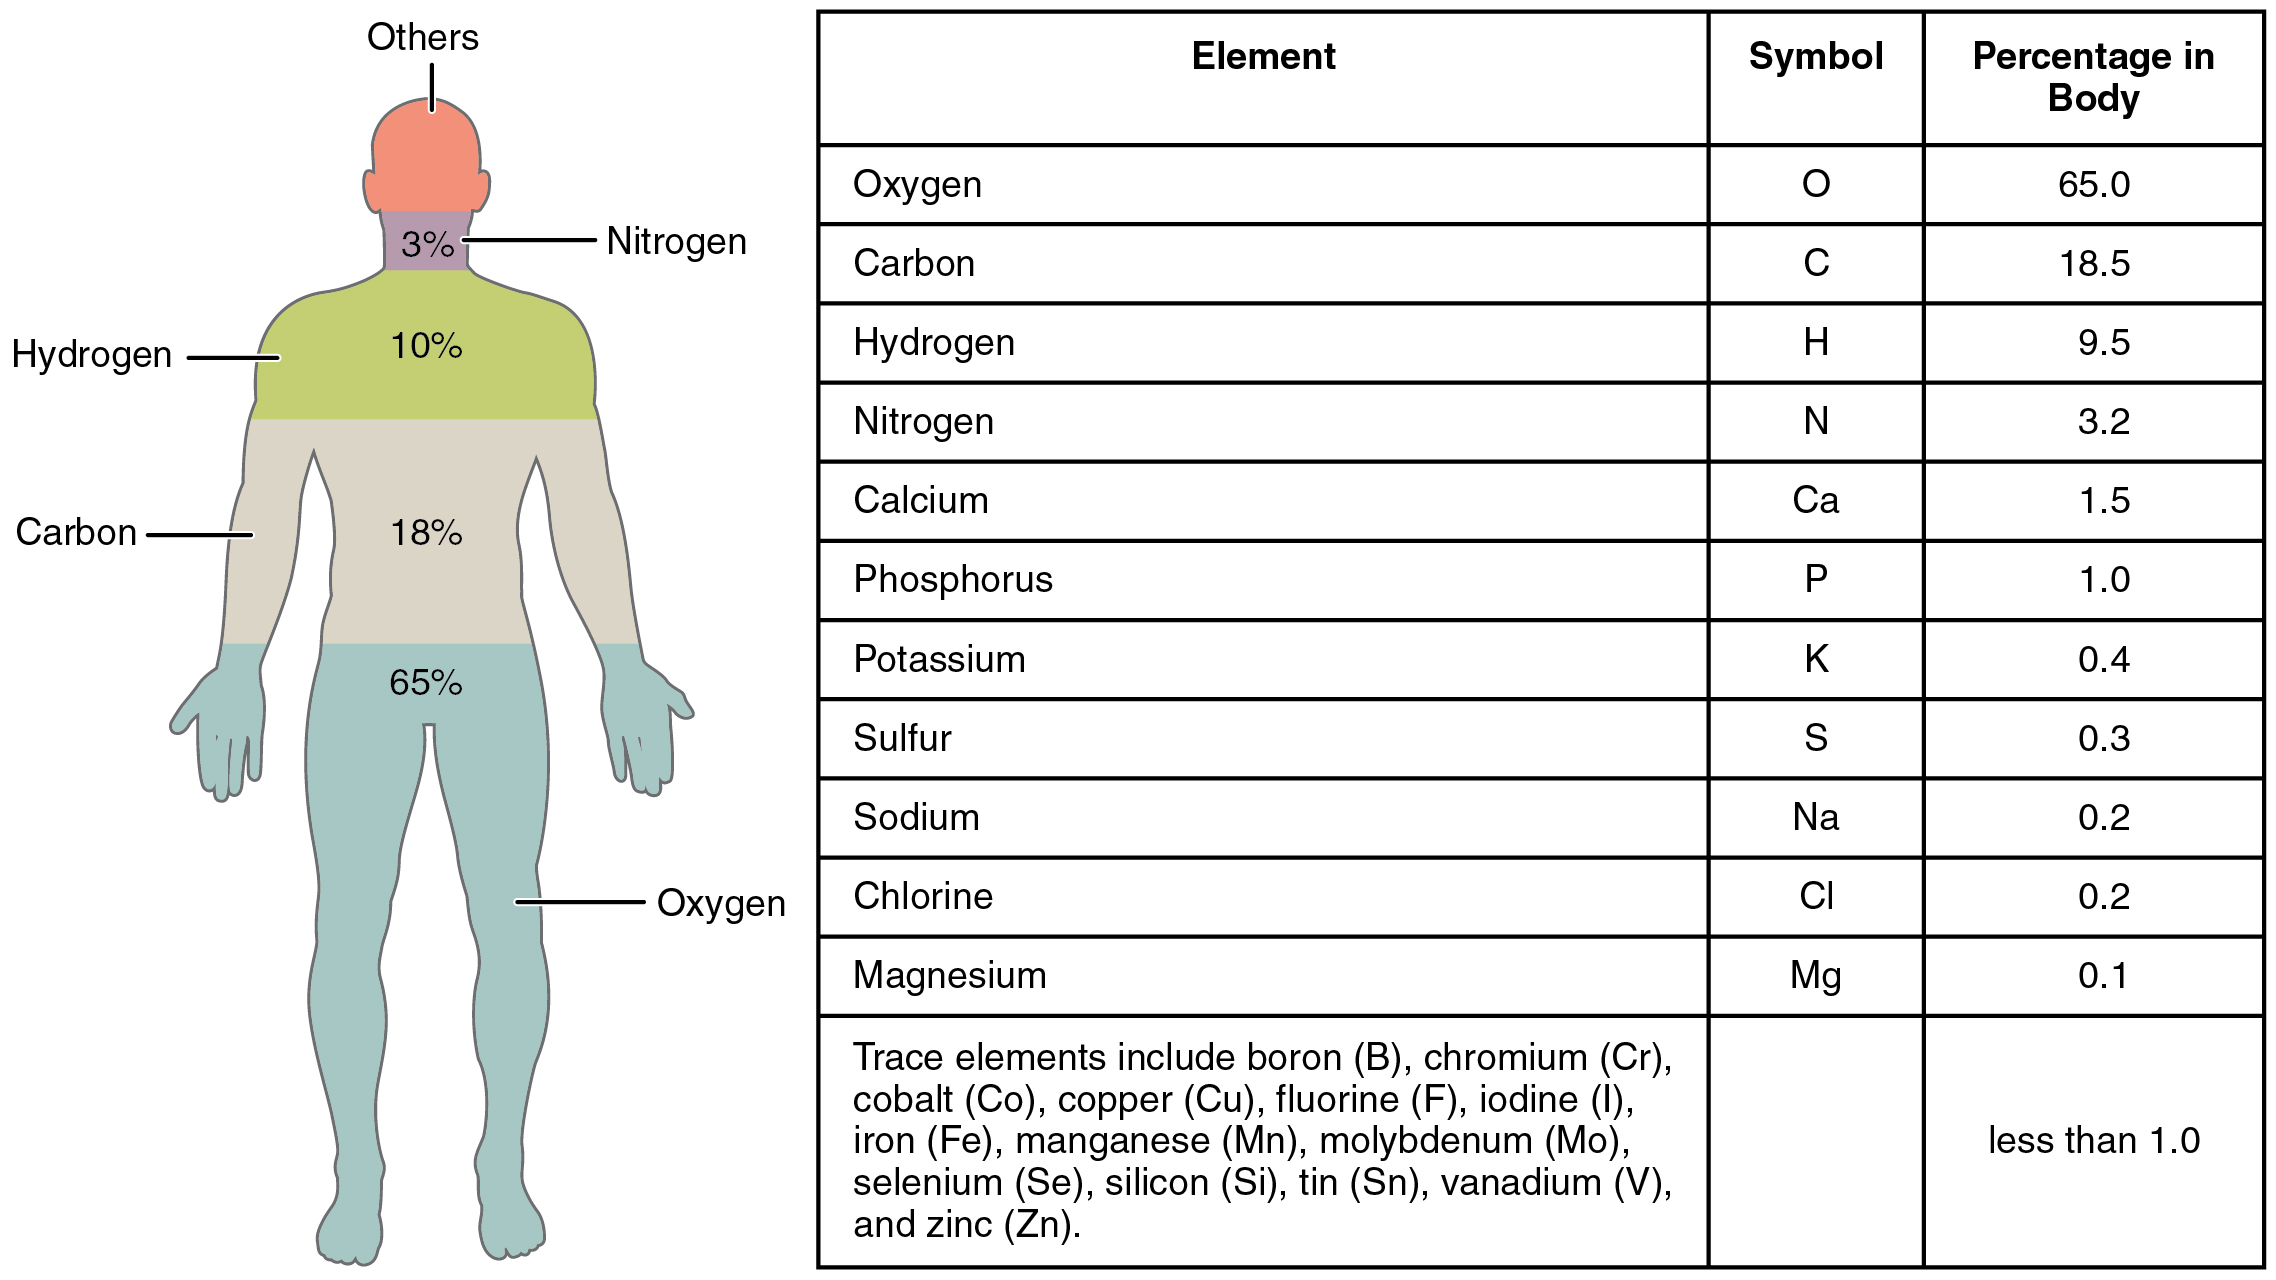 Elements of the Human Body